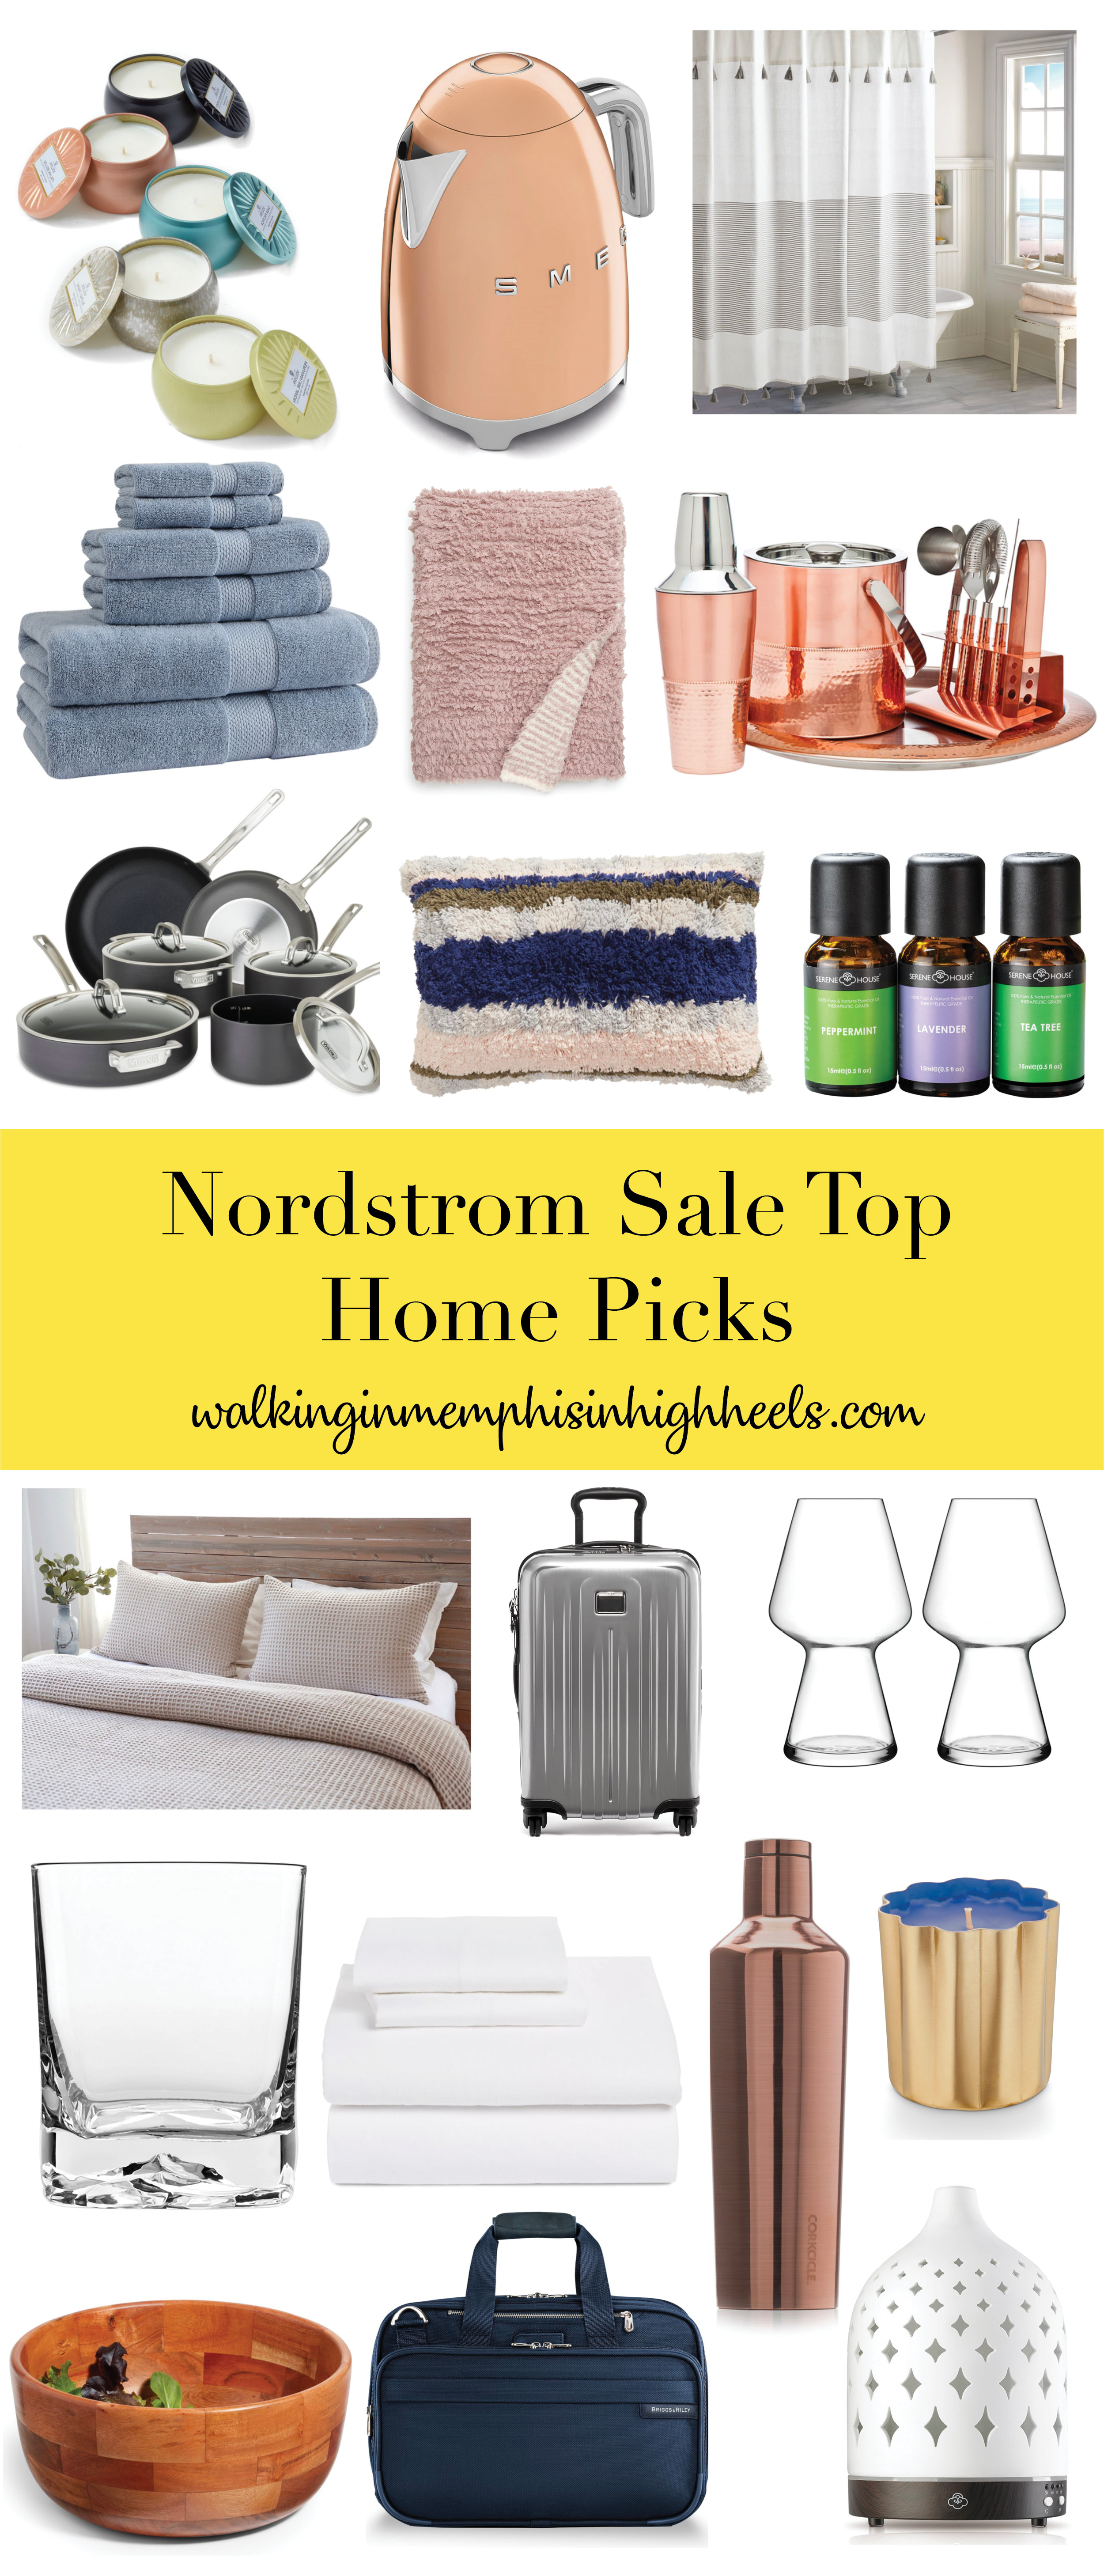 Nordstrom Anniversary Sale: Top Home Picks